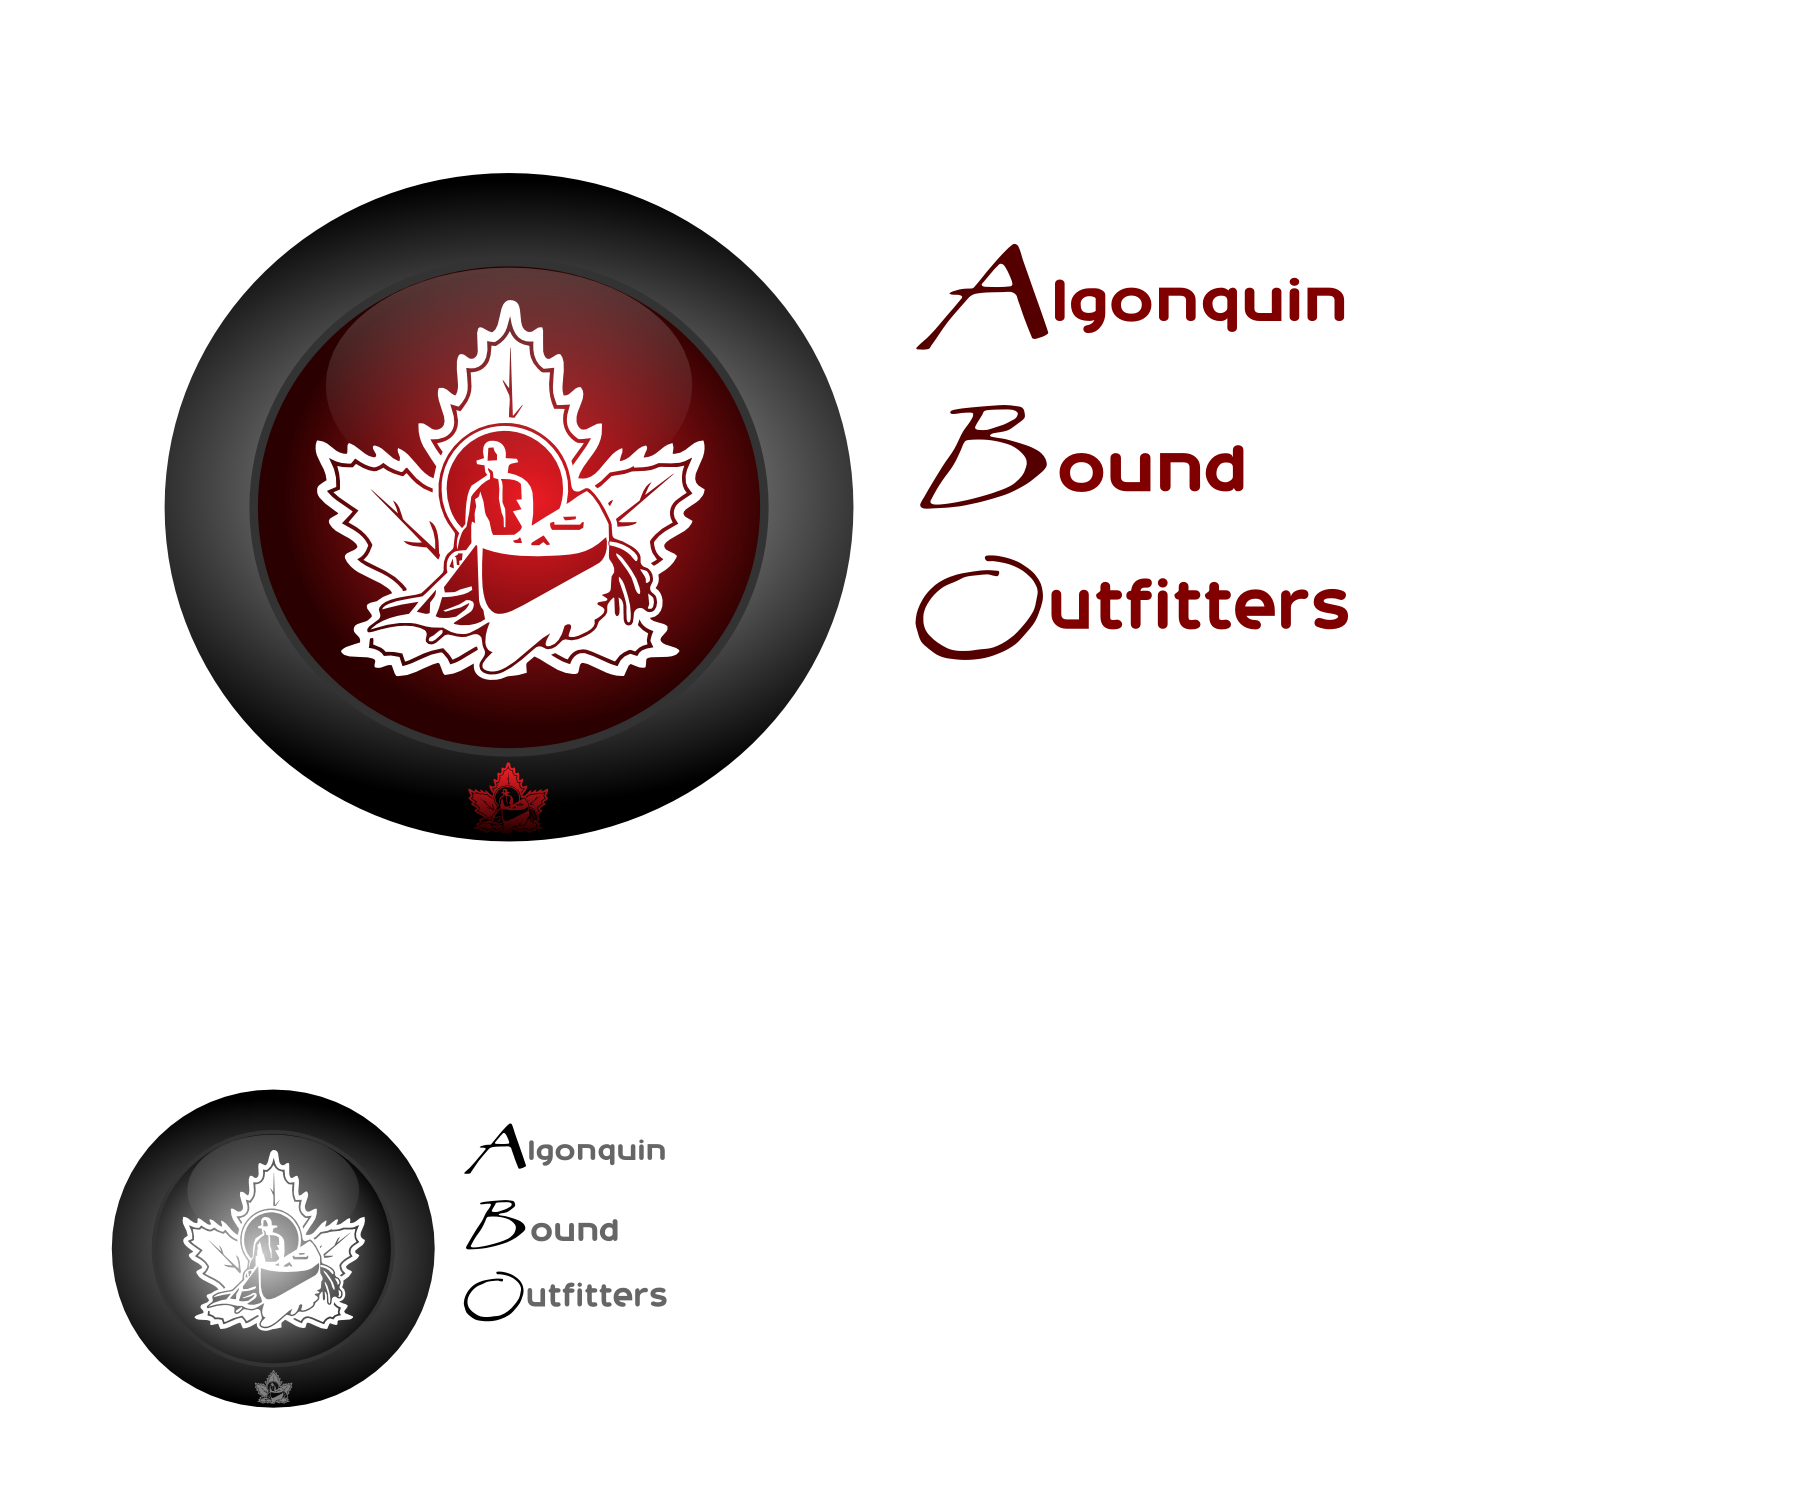 Logo Design by Arindam Khanda - Entry No. 120 in the Logo Design Contest Captivating Logo Design for Algonquin Bound Outfitters.